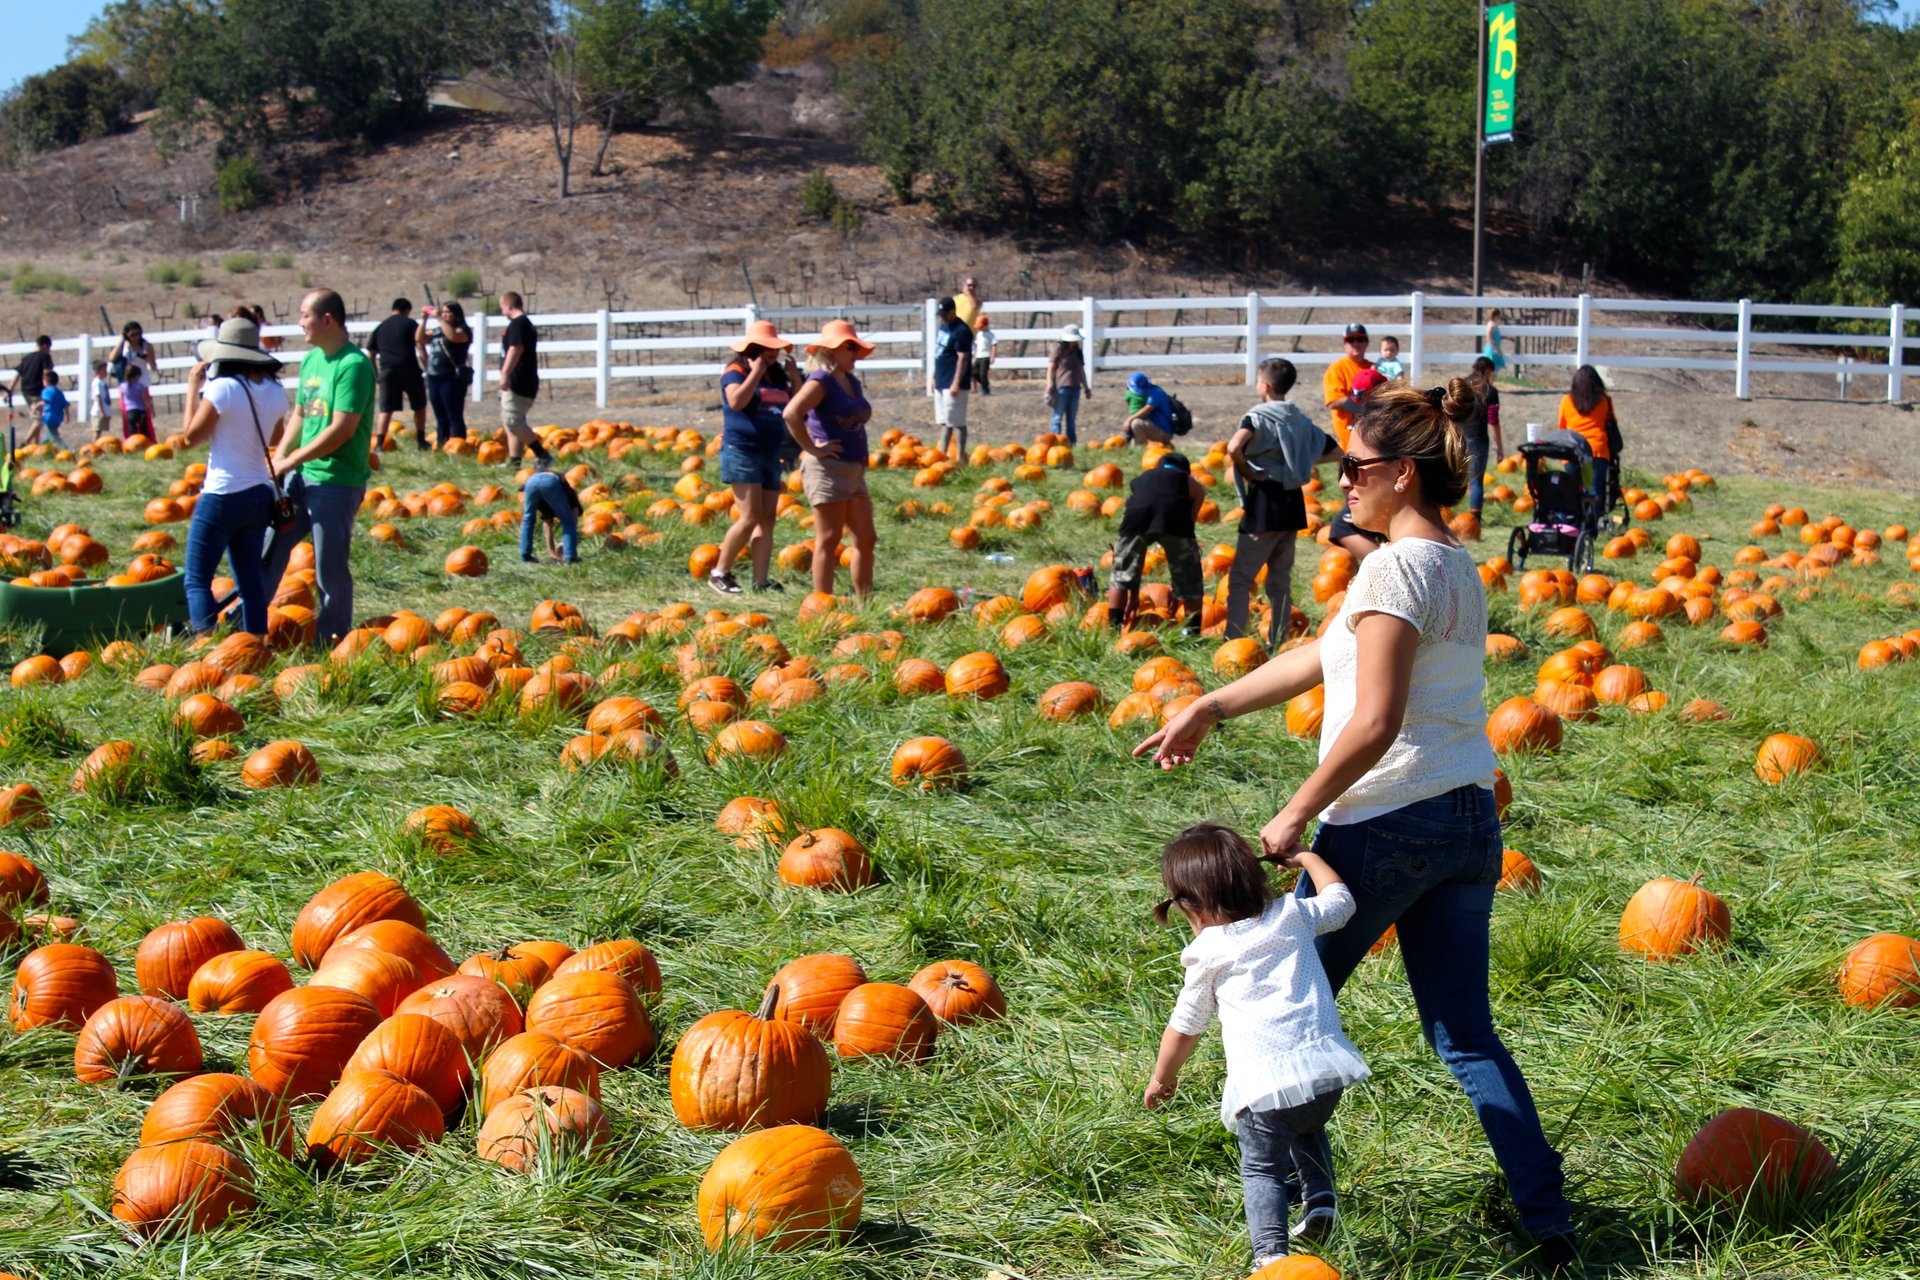 Cal Poly Pomona Pumpkin Festival in Los Angeles 2020 - Best Time